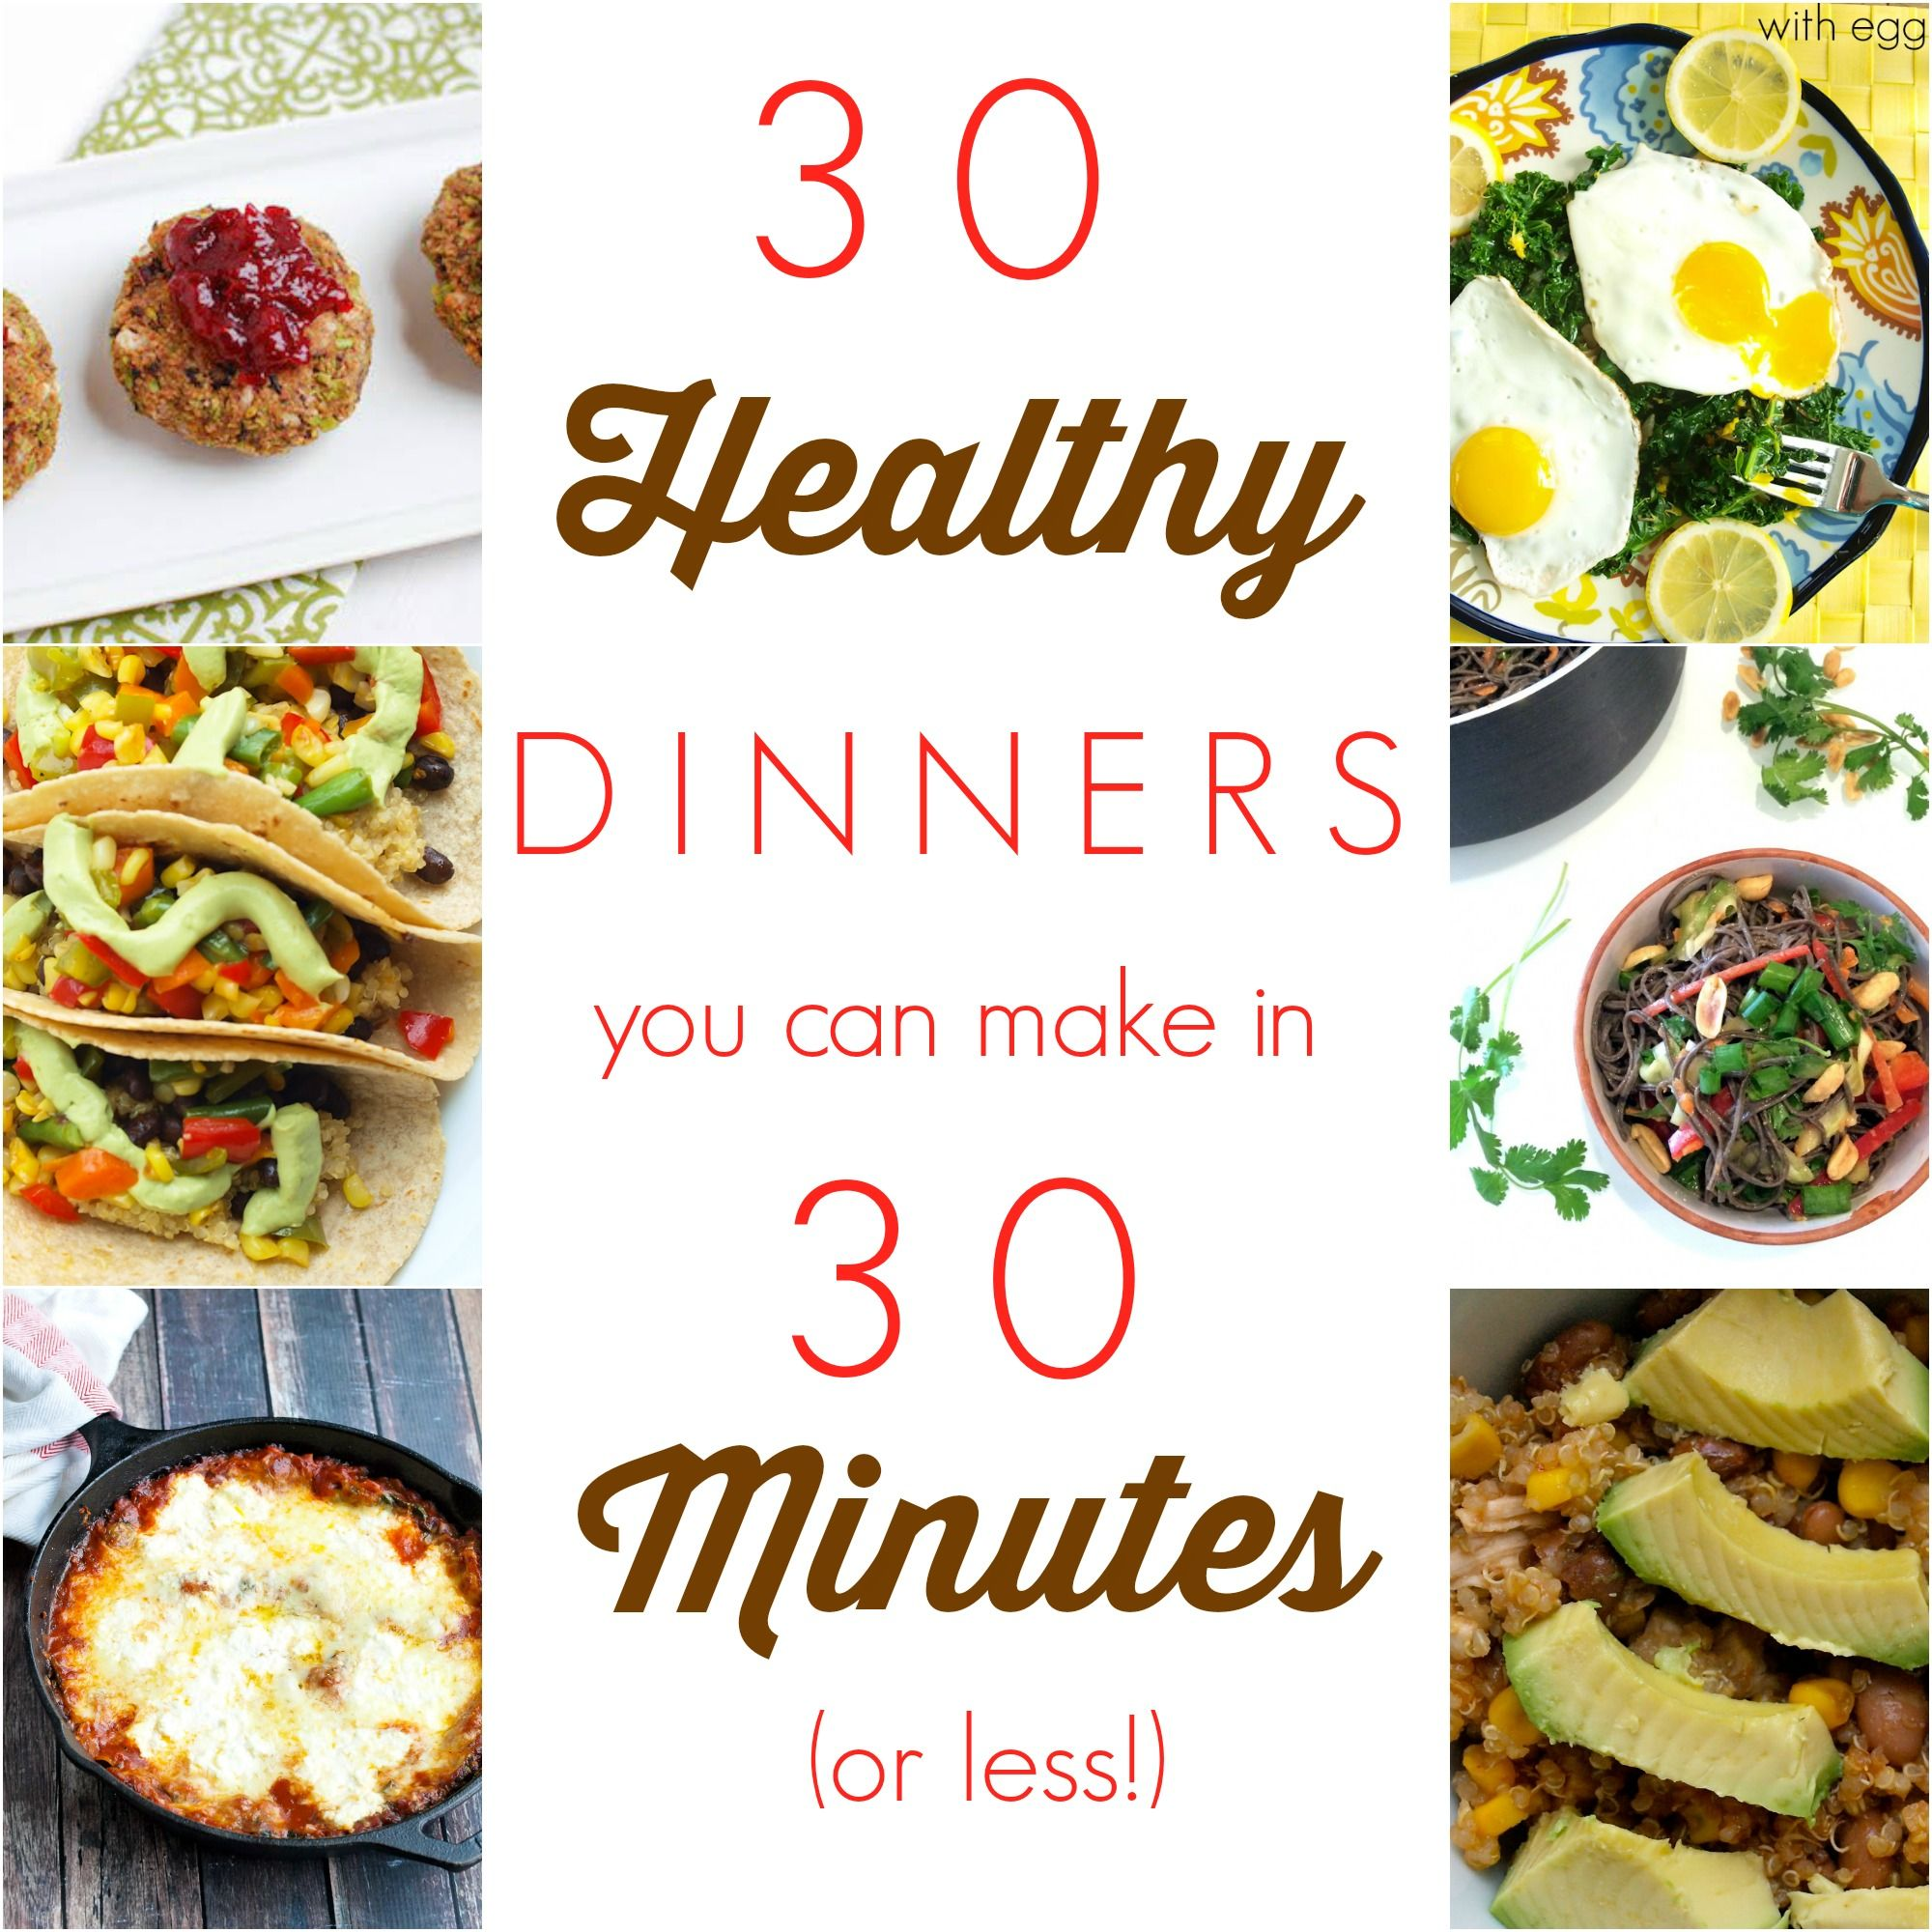 30 healthy dinners that you can make in 30 minutes or less jackpot 30 healthy dinners that you can make in 30 minutes or less all of these dinners are whole food healthy dinner recipes that you can make super fast forumfinder Gallery